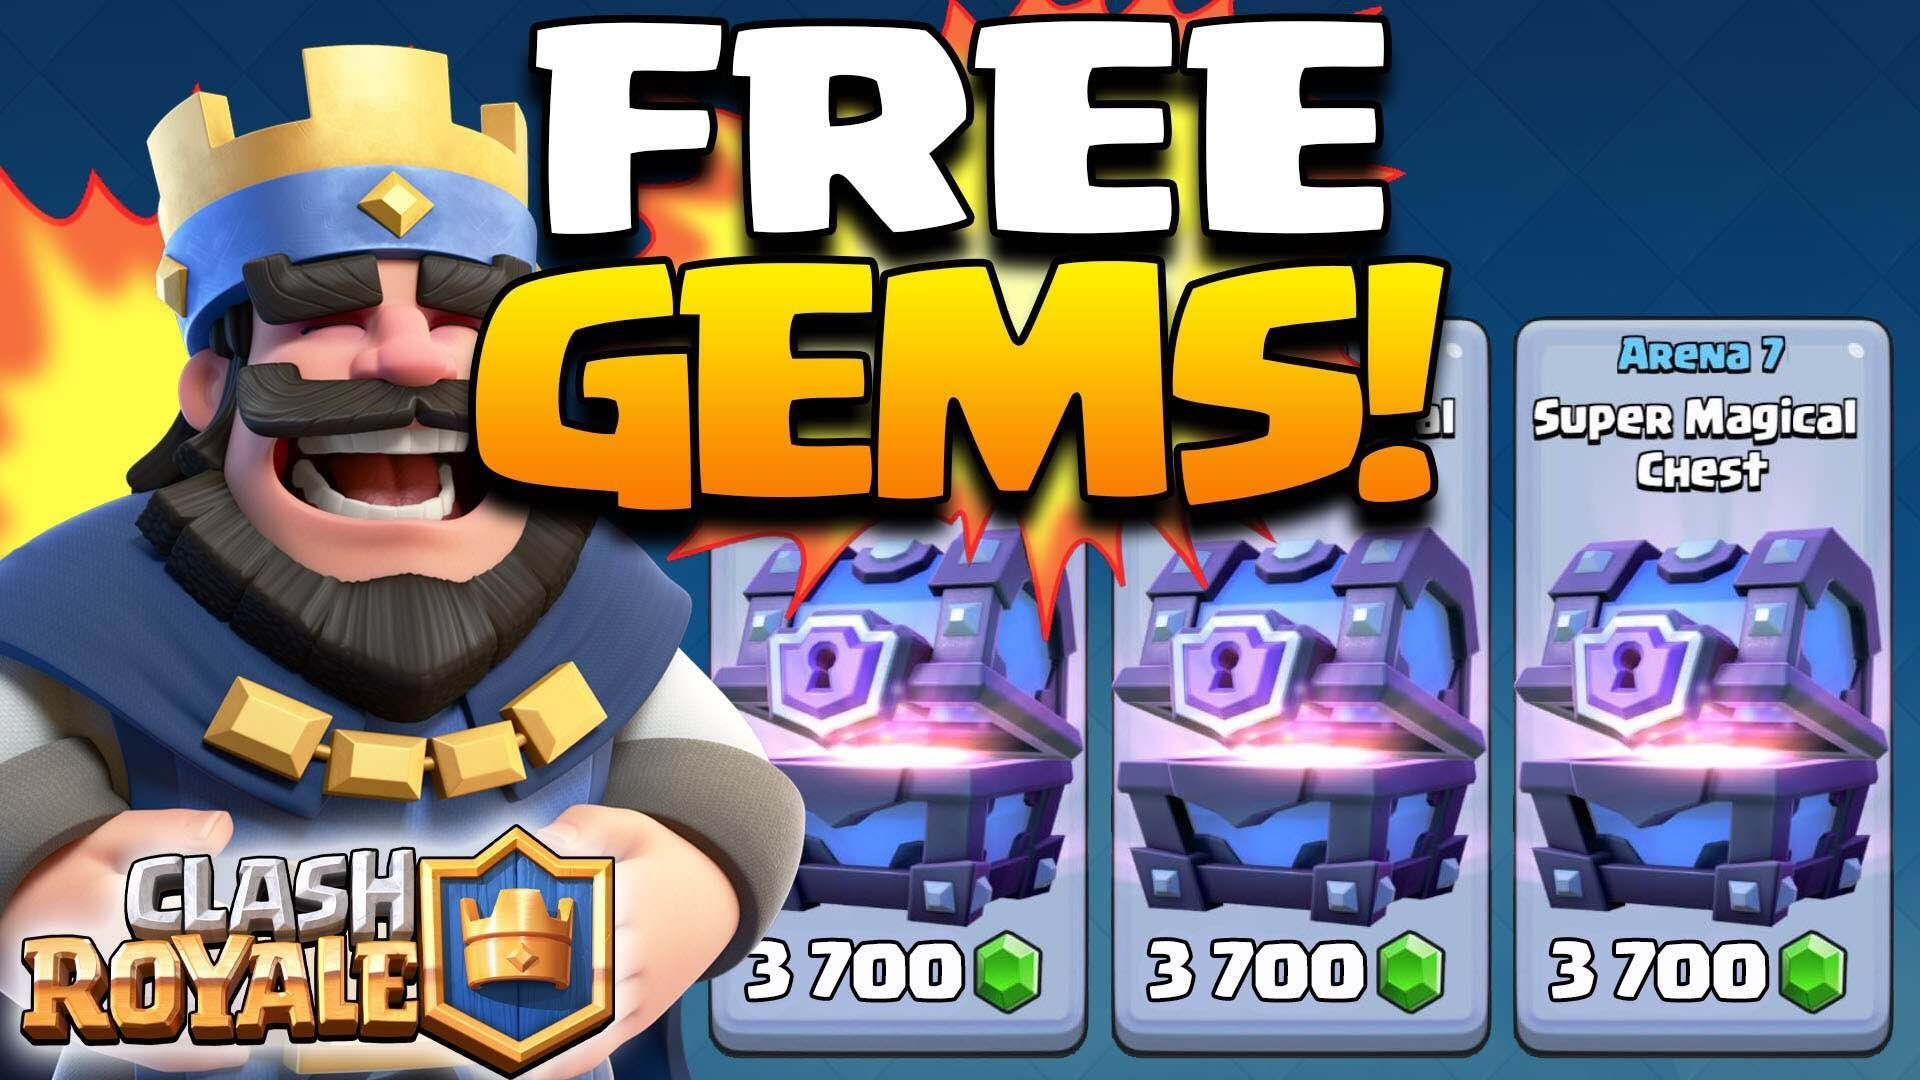 Clash Royale Hack Gems Generator Will Improve Your Account In The